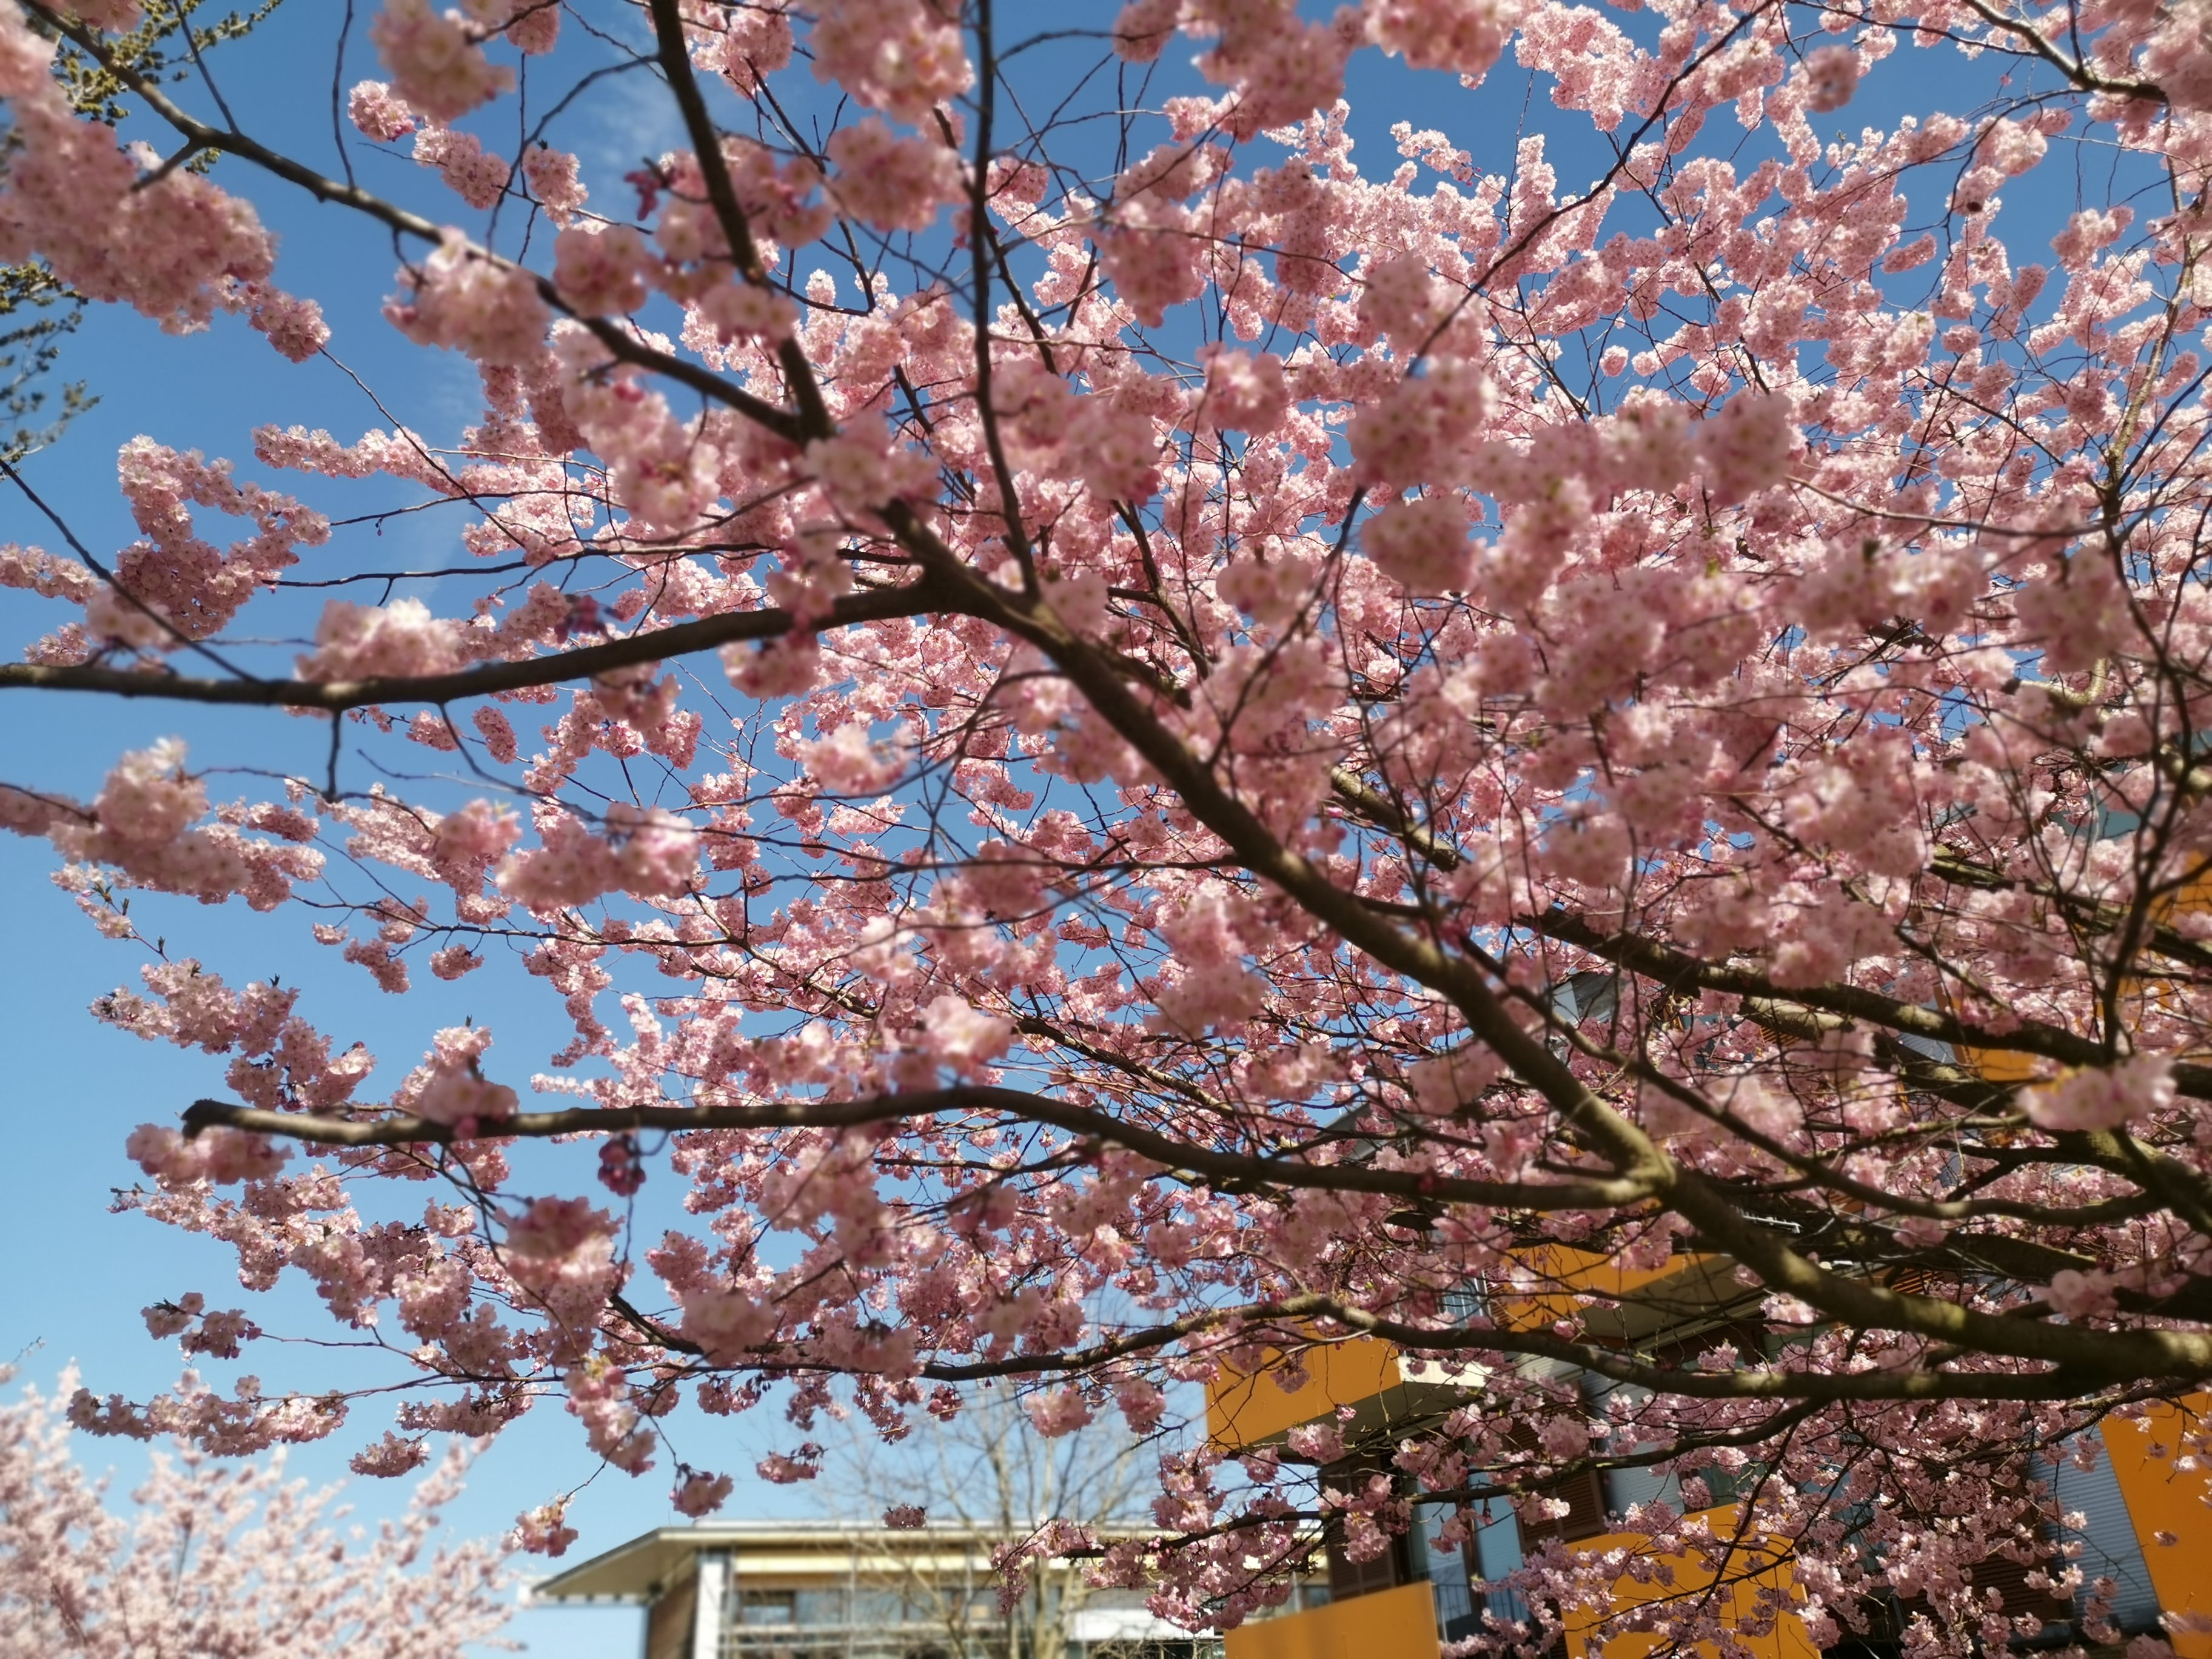 2-Day Washington DC Cherry Blossom Festival, Hershey Chocolate World Tour from New York